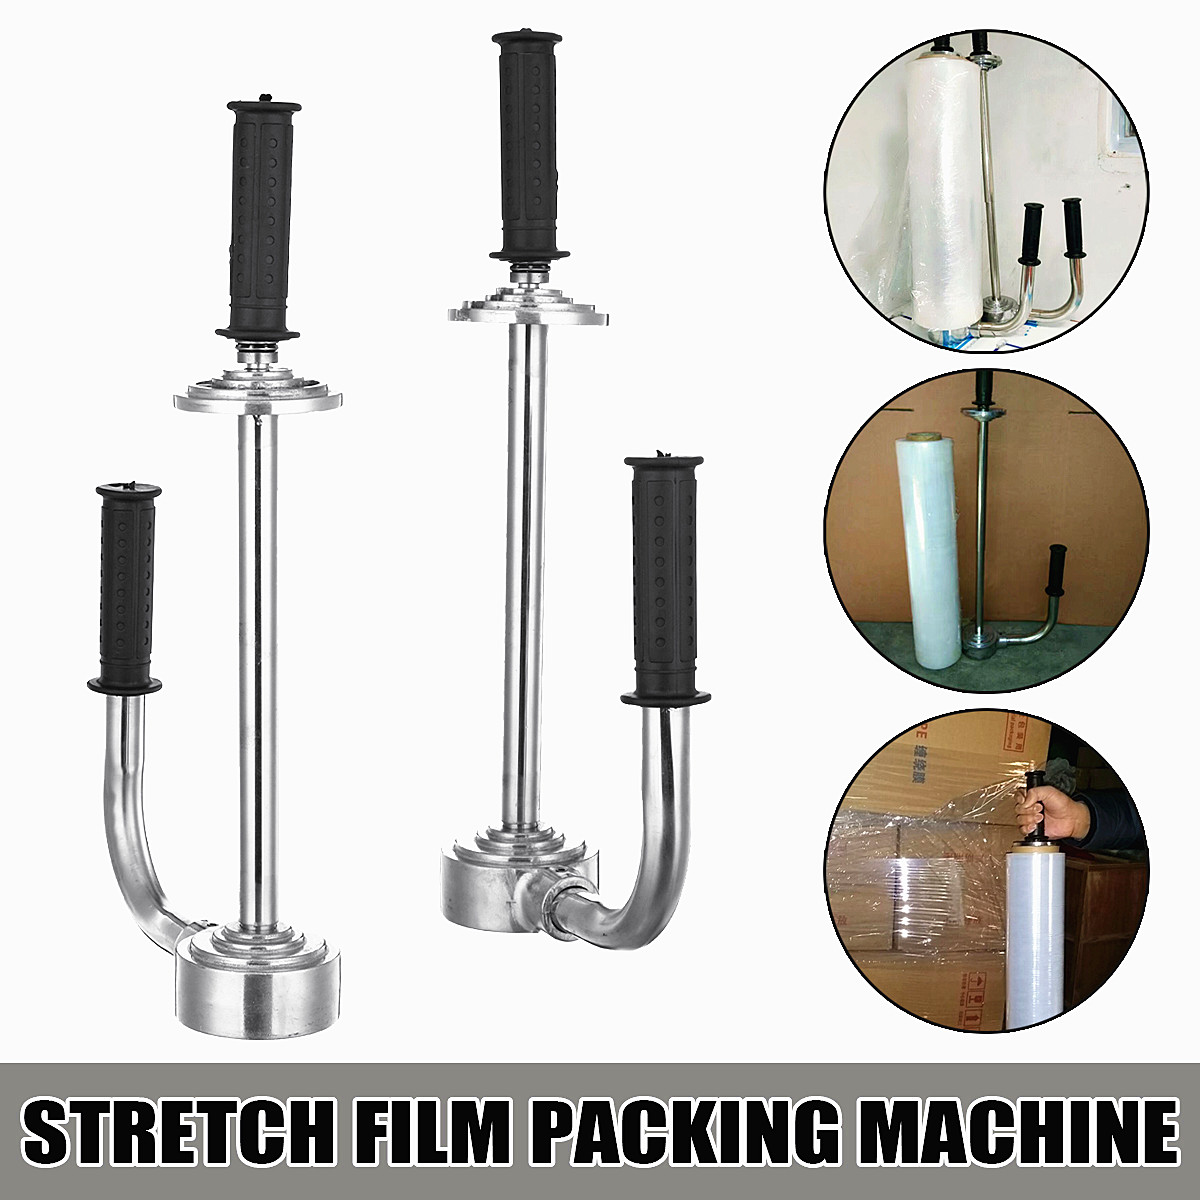 12~20 Handy manual handle stretch film wrapping dispenser tools pallet stretch packing equipment carton package machinery12~20 Handy manual handle stretch film wrapping dispenser tools pallet stretch packing equipment carton package machinery